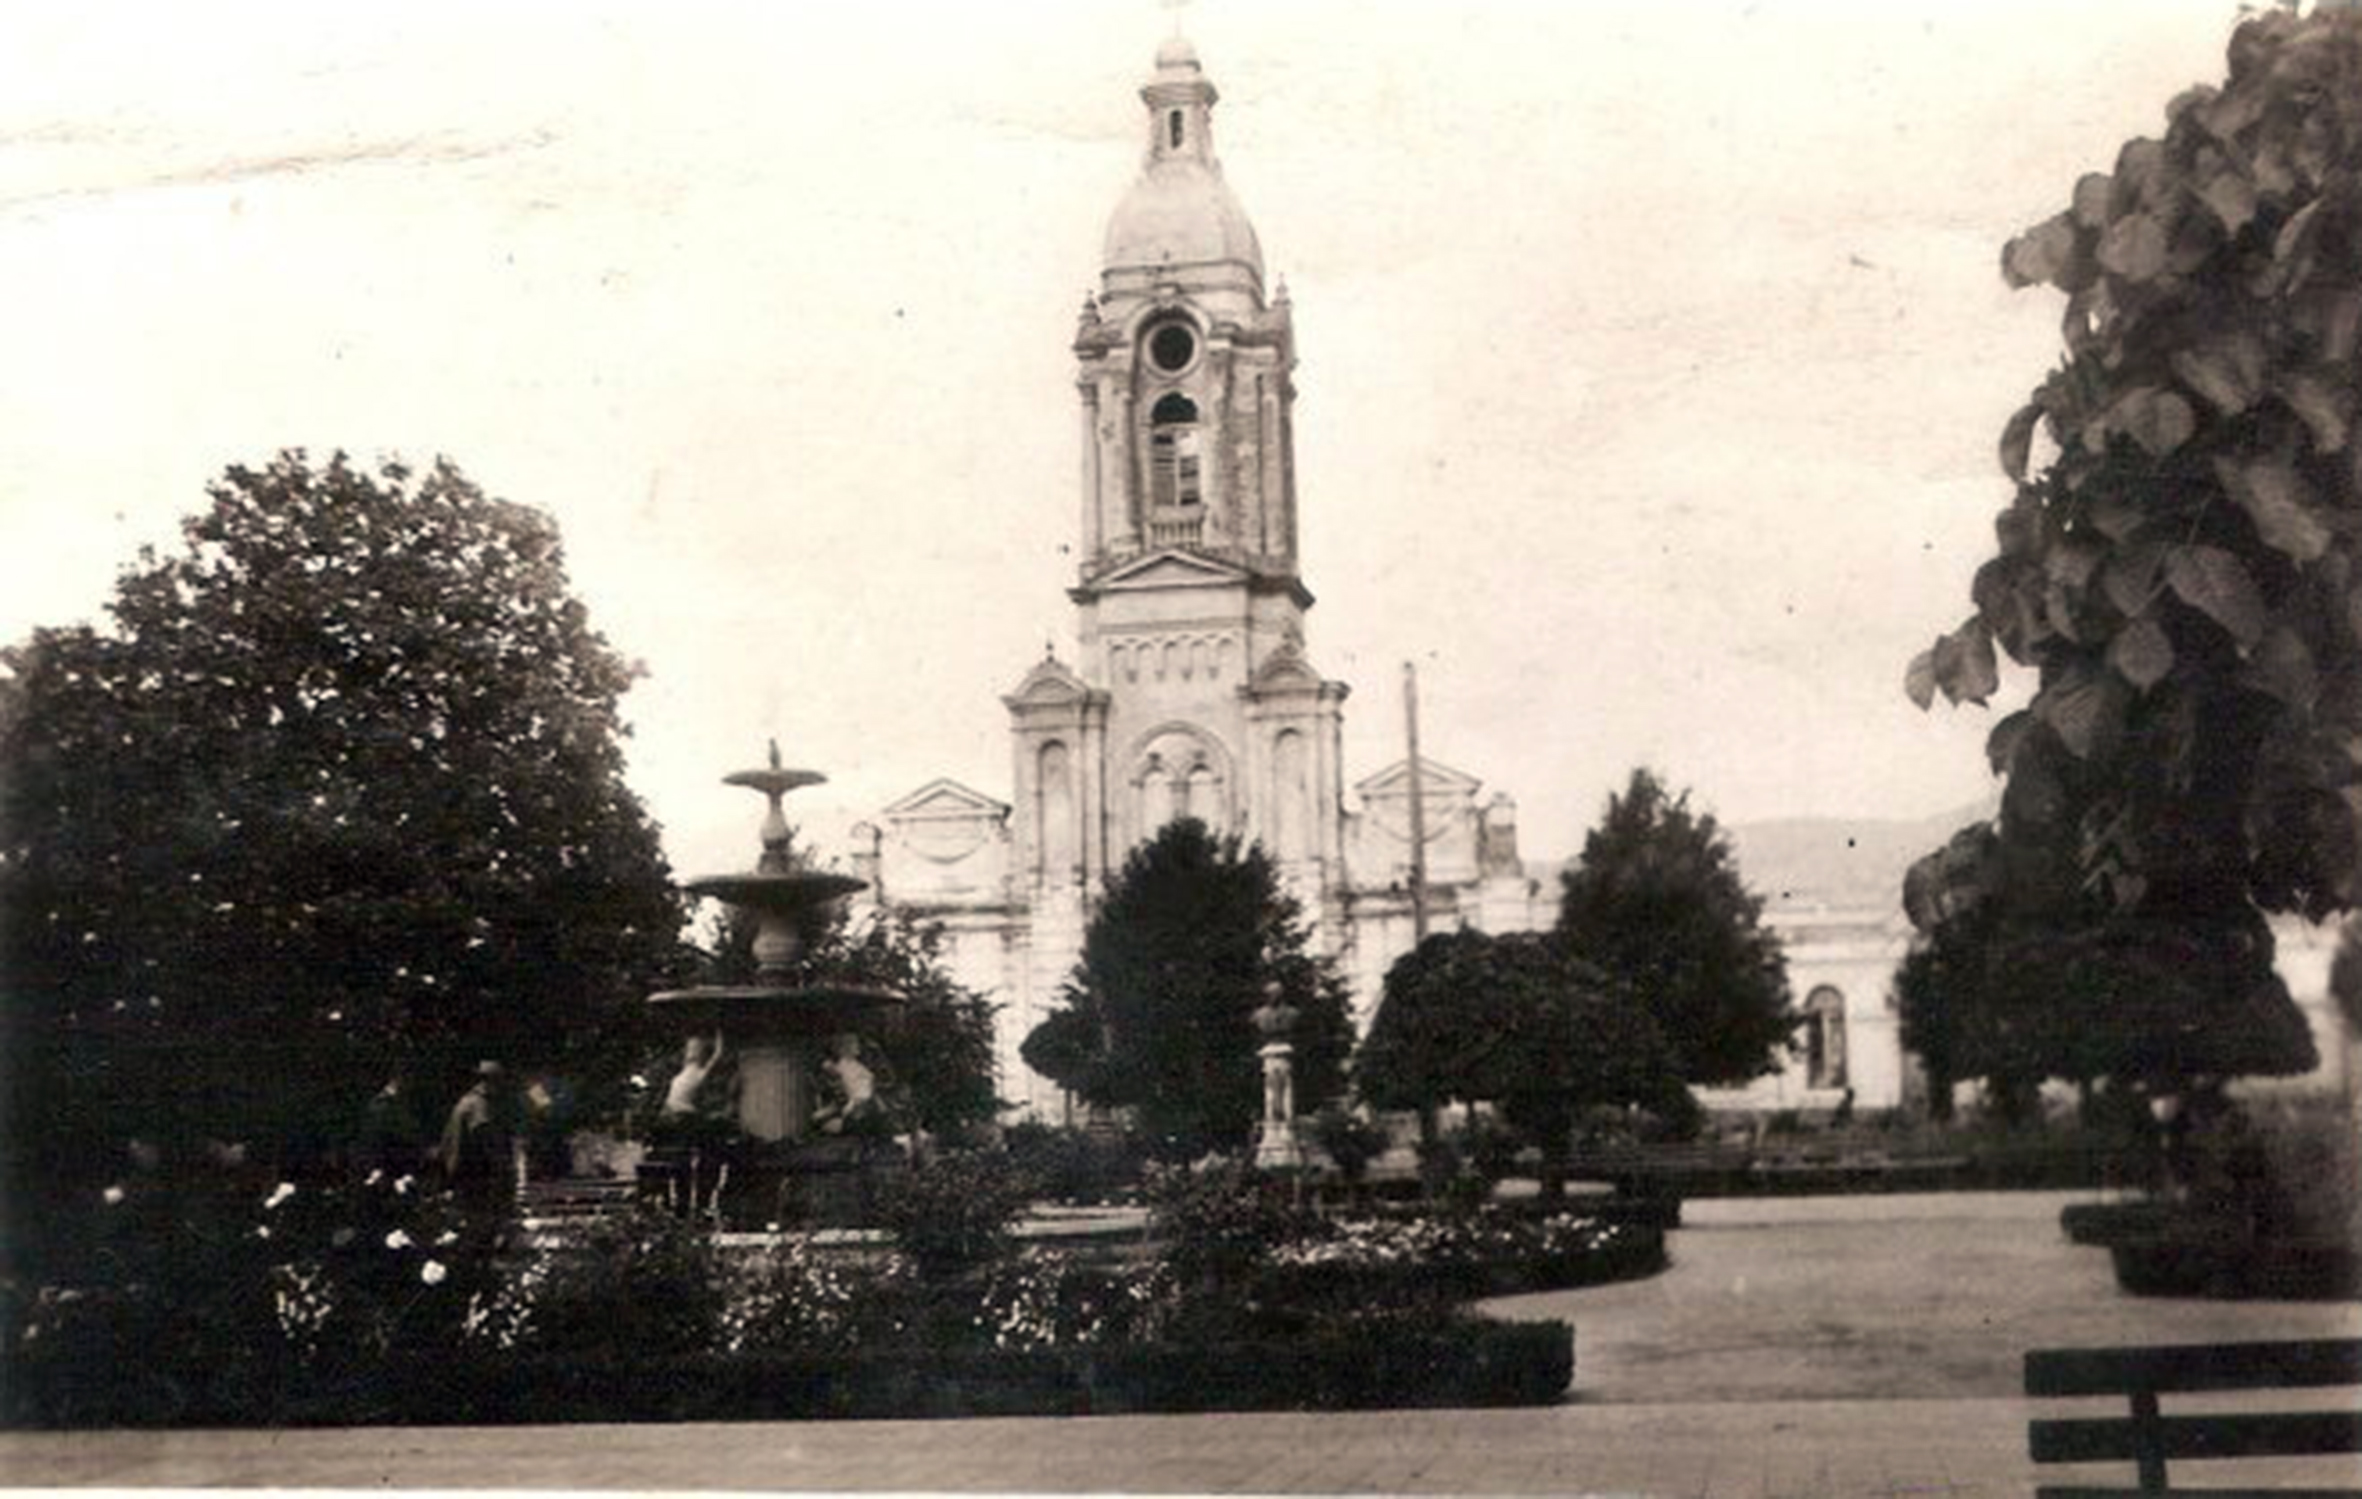 Enterreno - Fotos históricas de chile - fotos antiguas de Chile - Iglesia La Matriz de Angol en 1939